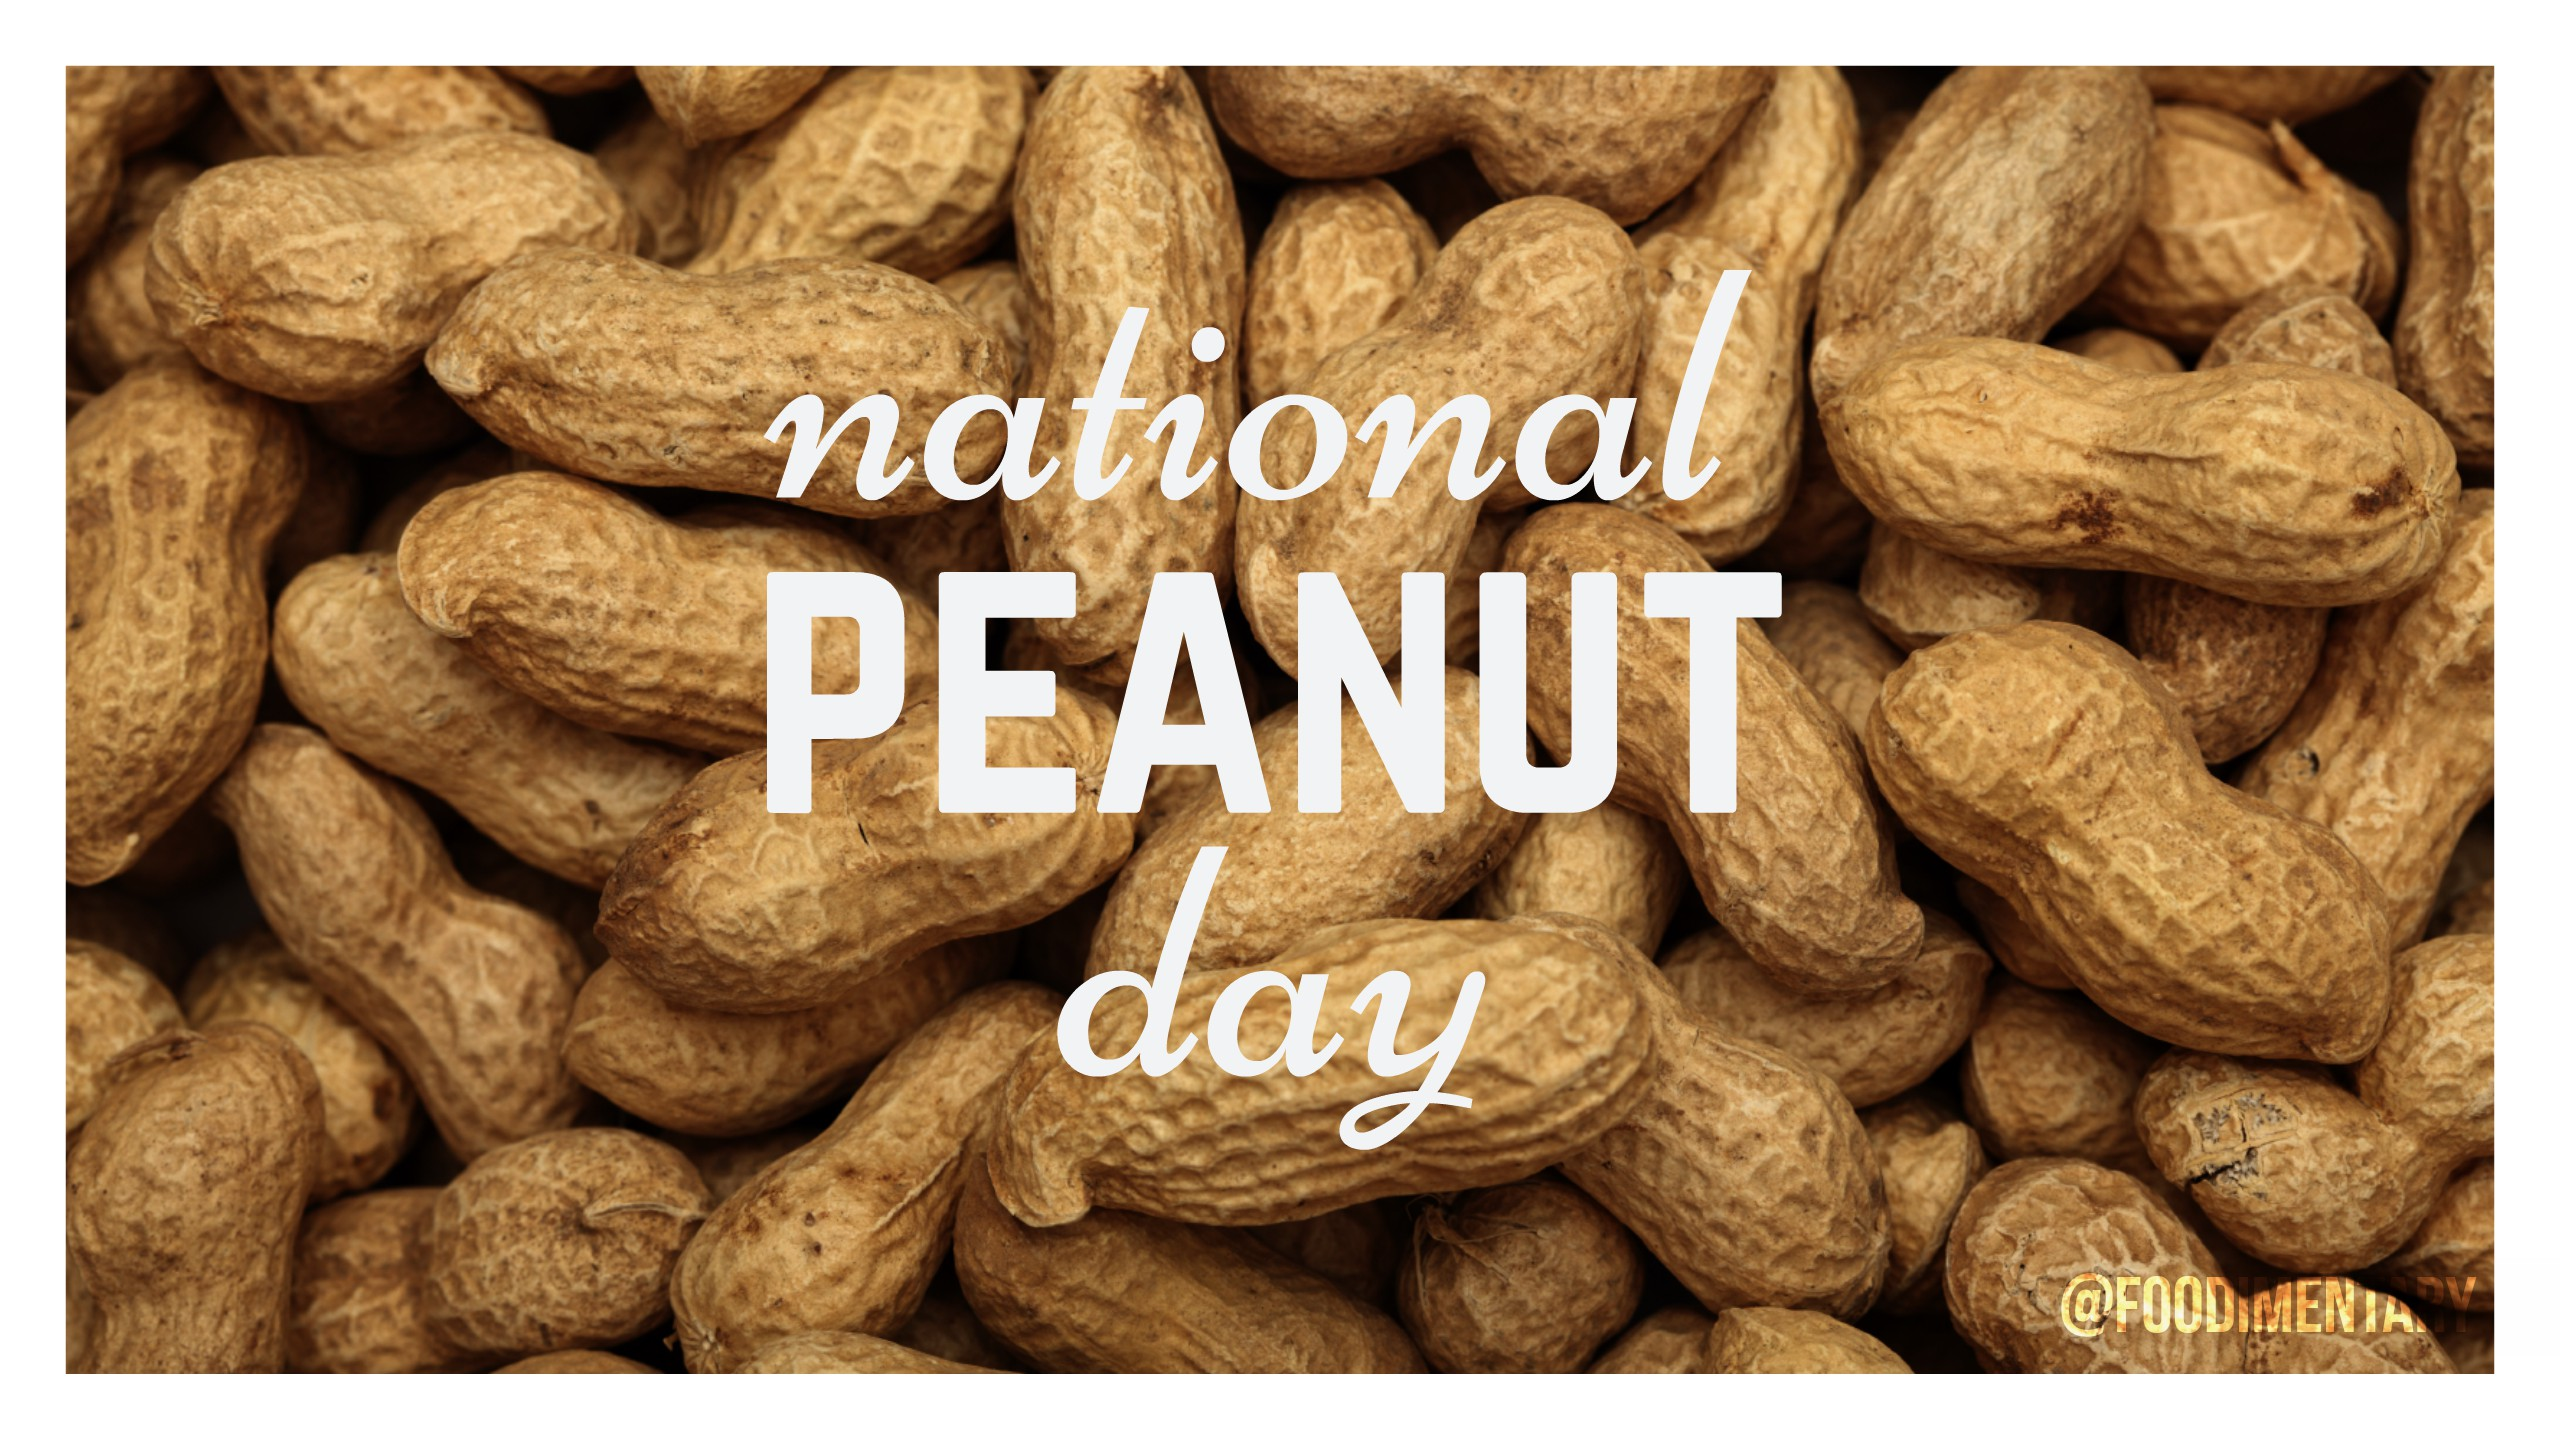 2013 National Peanut Day